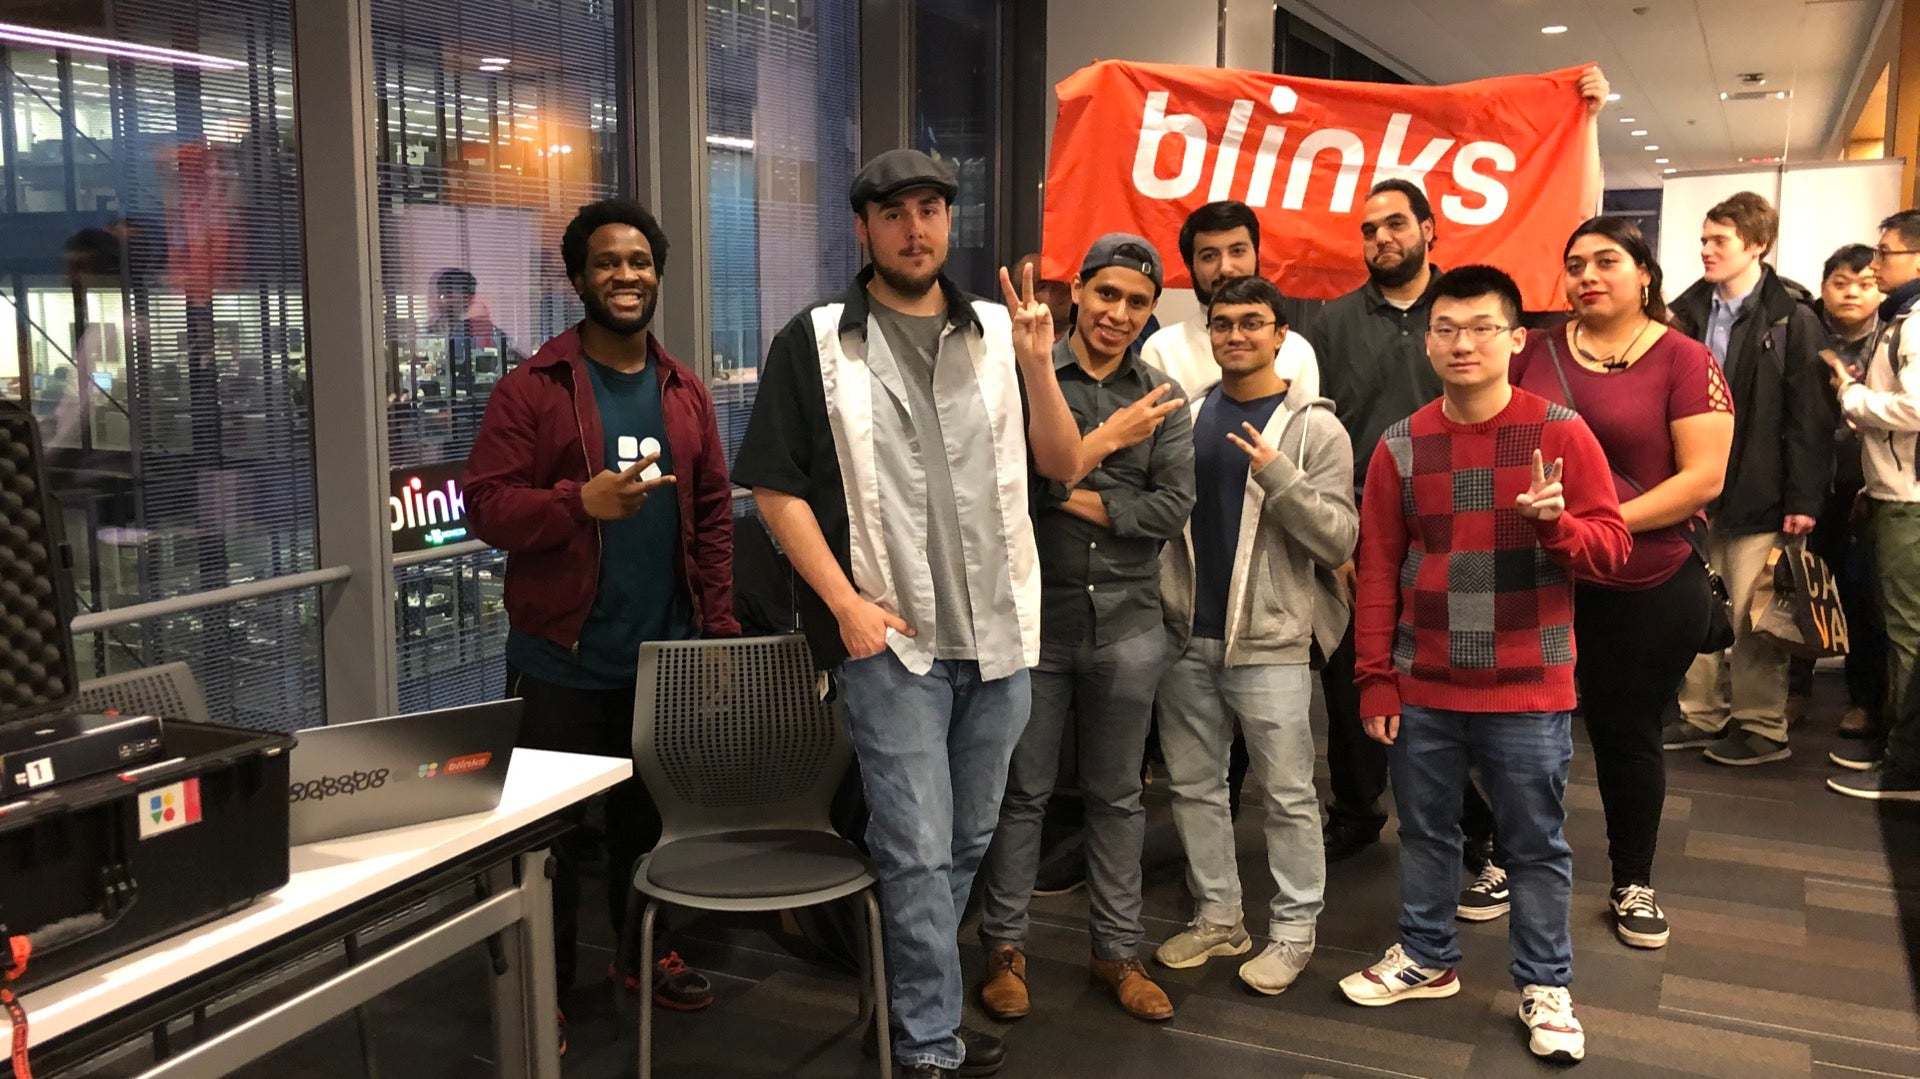 Global Game Jam lines up for Blinks